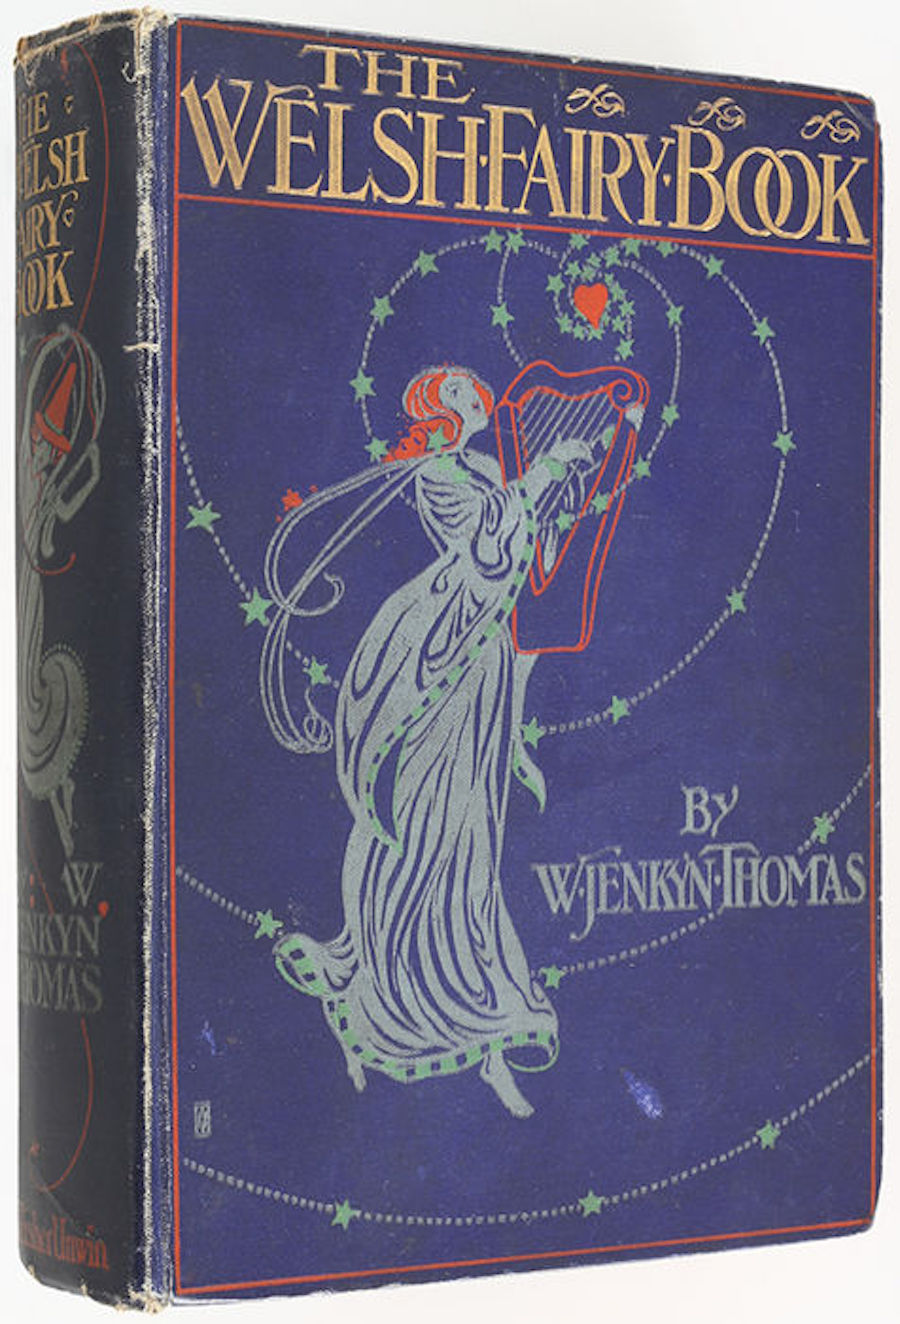 The first edition cover of The Welsh Fairy Book by W. Jenkyn Thomas